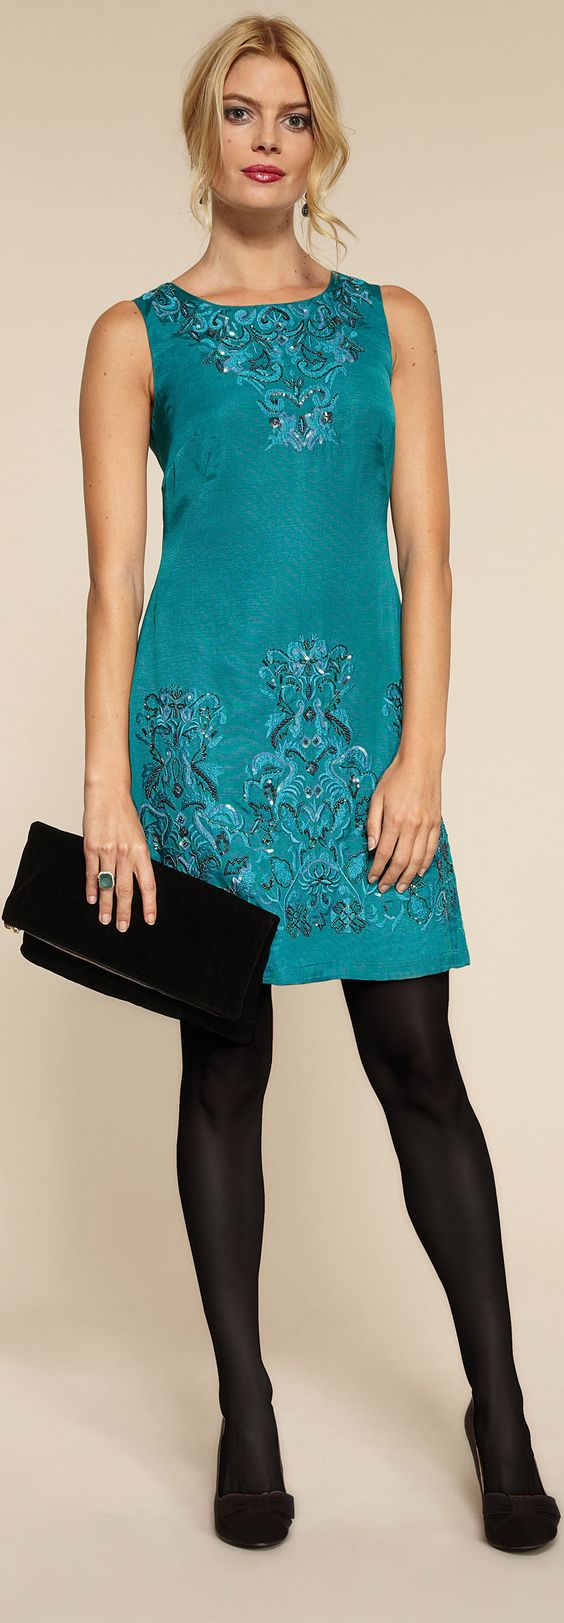 Stylish clothes for women over 40